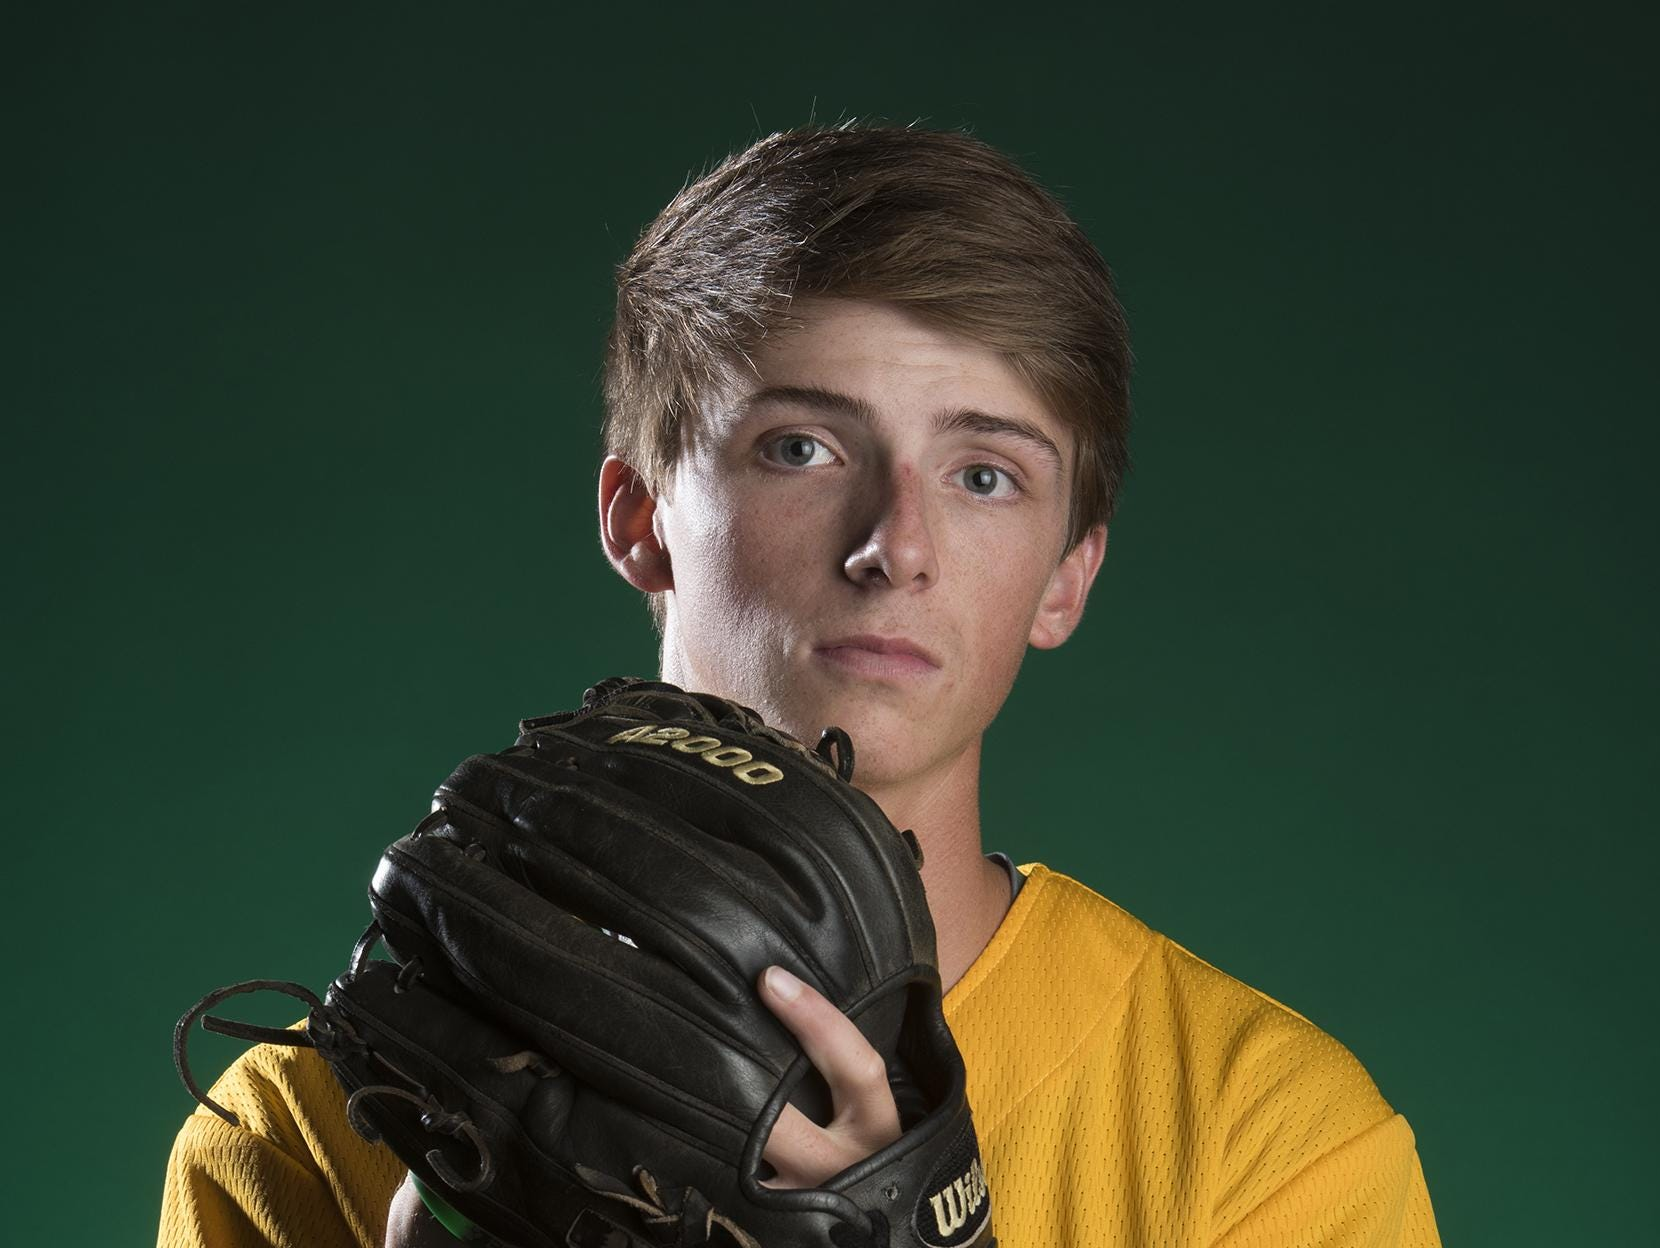 Edgewood's Hunter Elliot had a 10-0 record for the state champion Wildcats and was the AISA pitcher of the year.